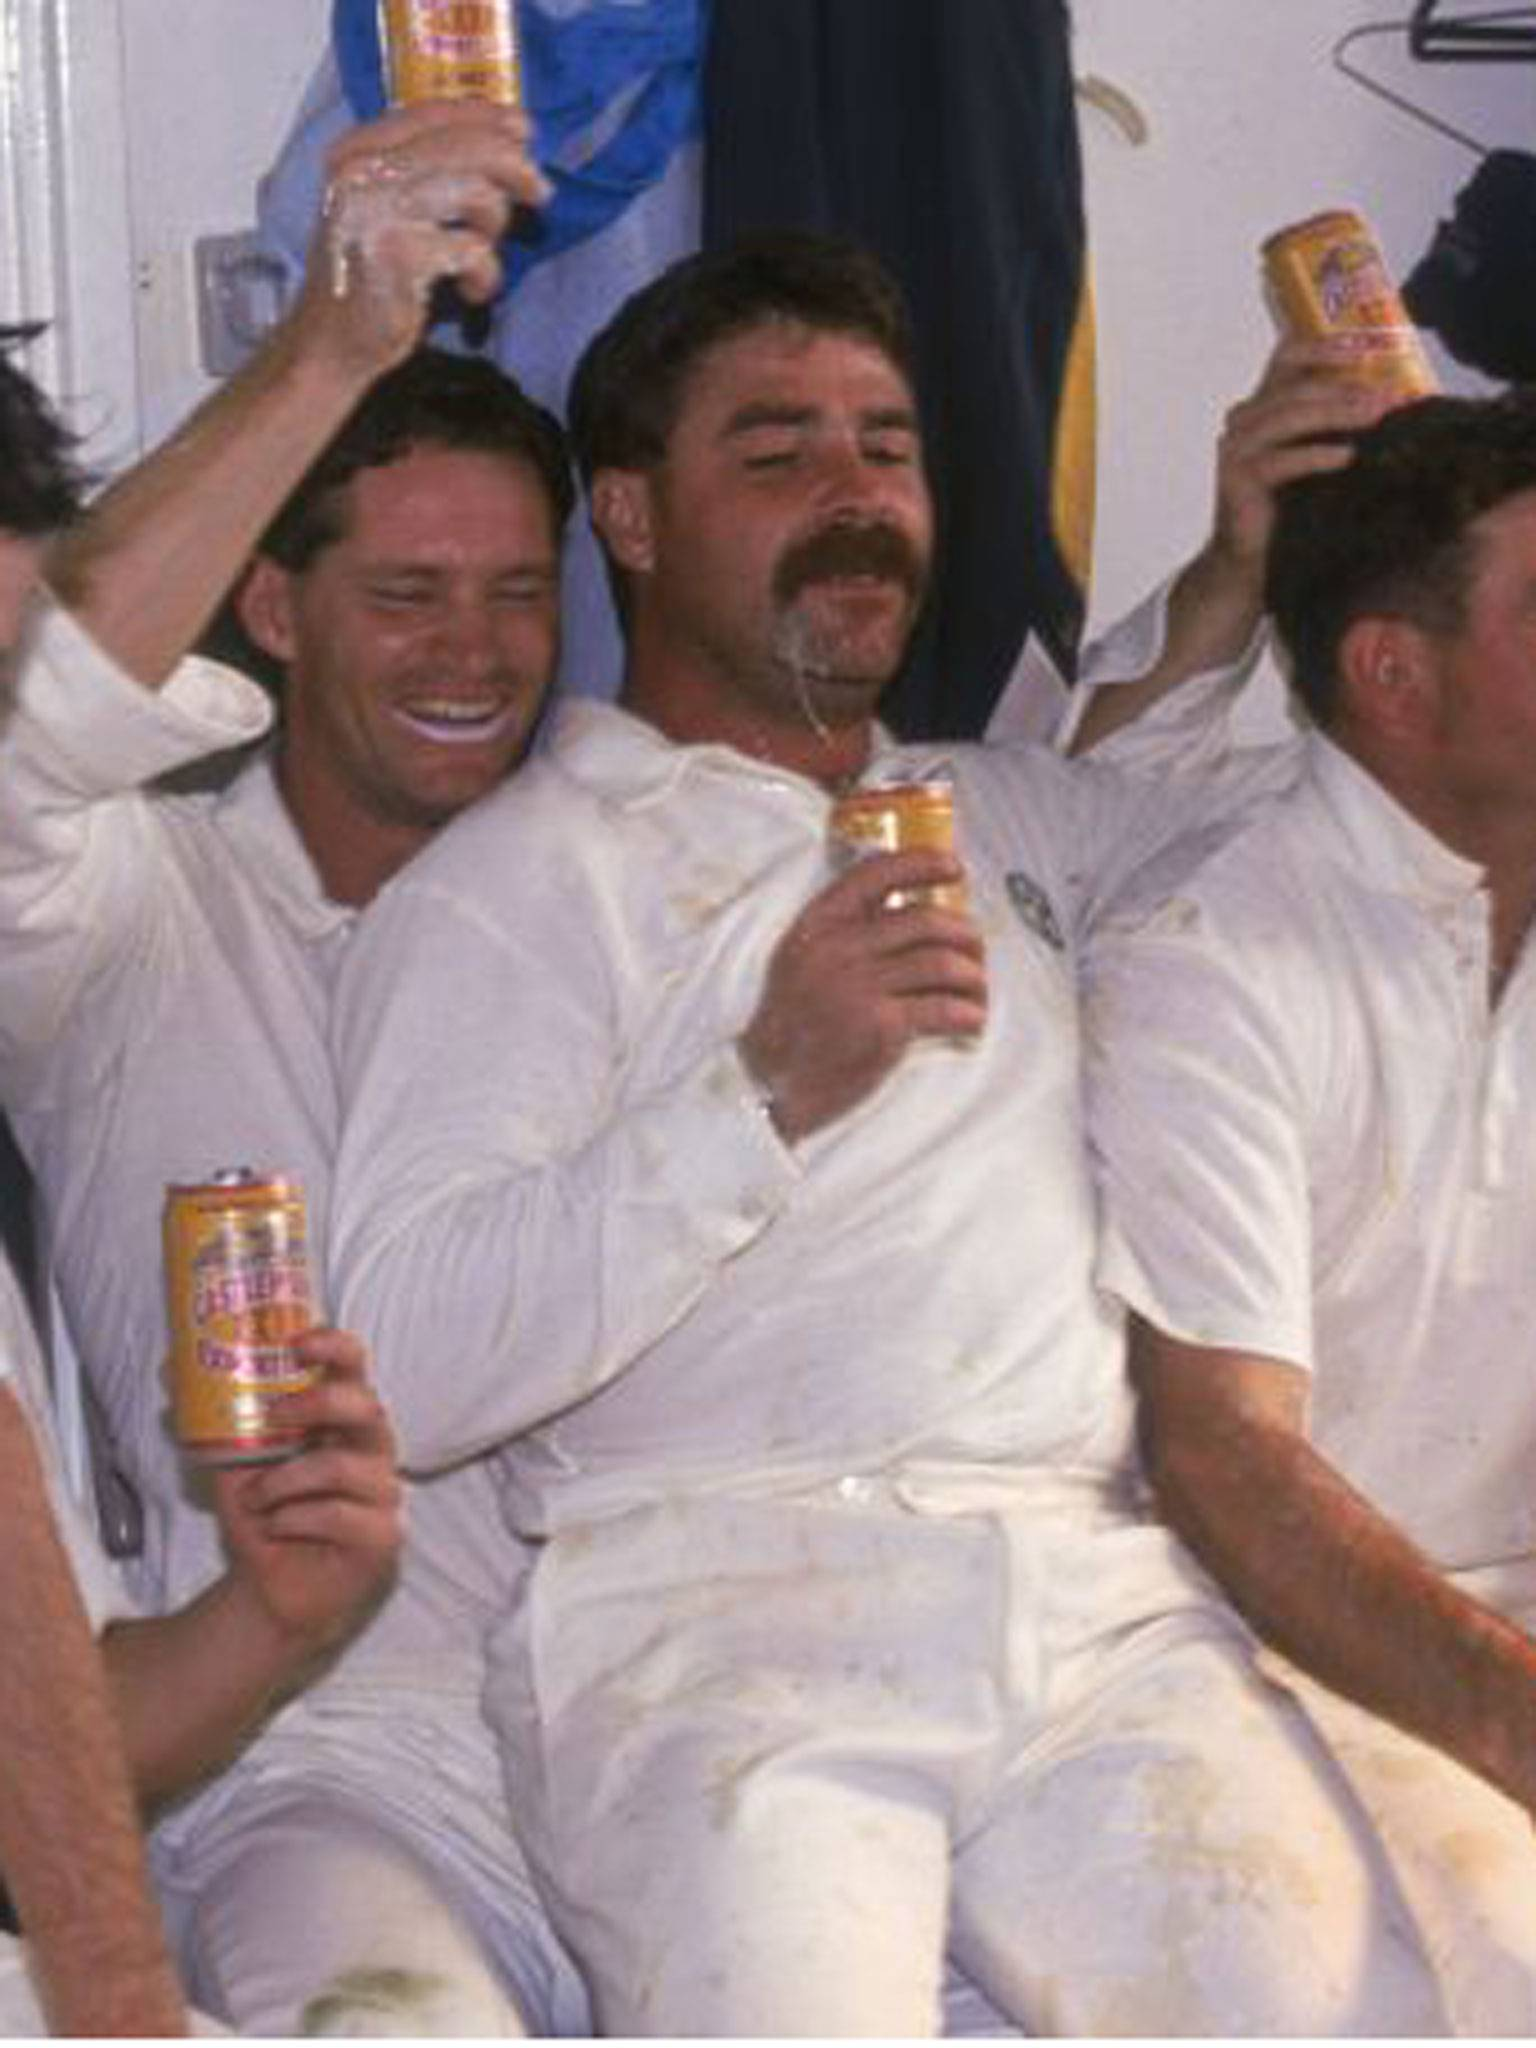 David Boon was a cricketer known to enjoy a drink...or 52